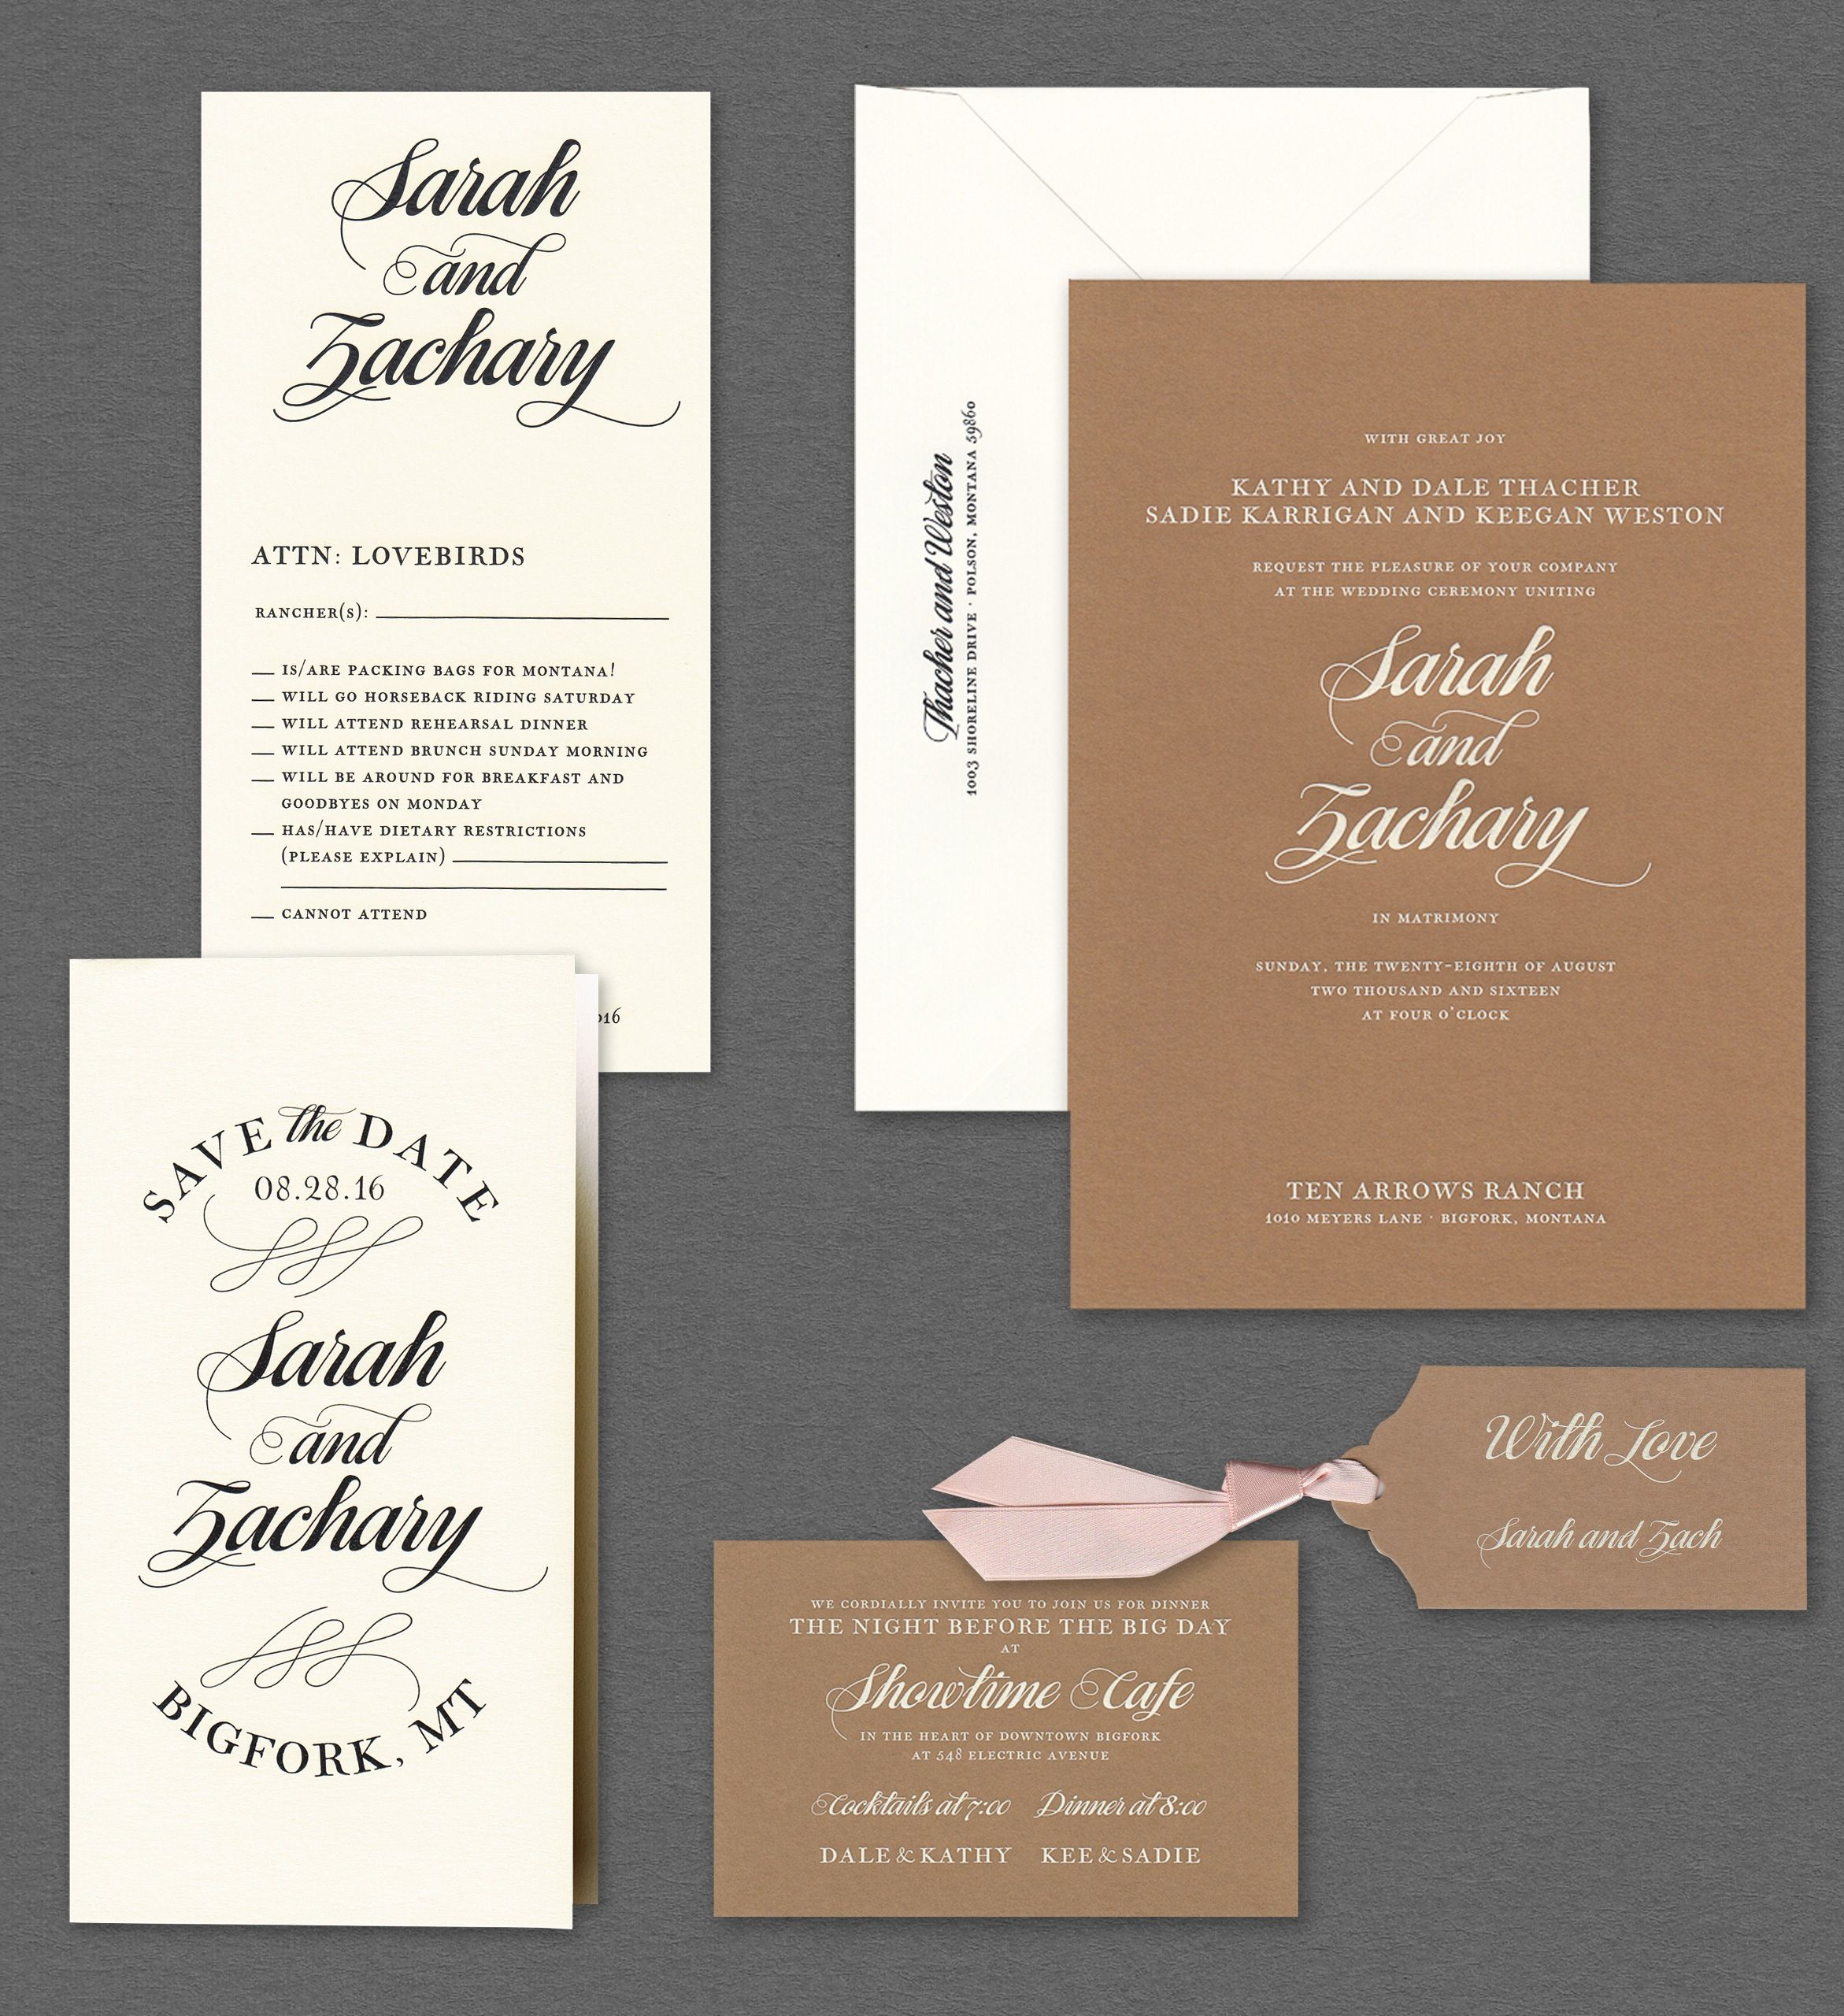 Vera wang kraft wedding invitation suiteavailable at honey paper greeting card and stationery store near you click now to find the nearest crane stationery store in your area kristyandbryce Image collections